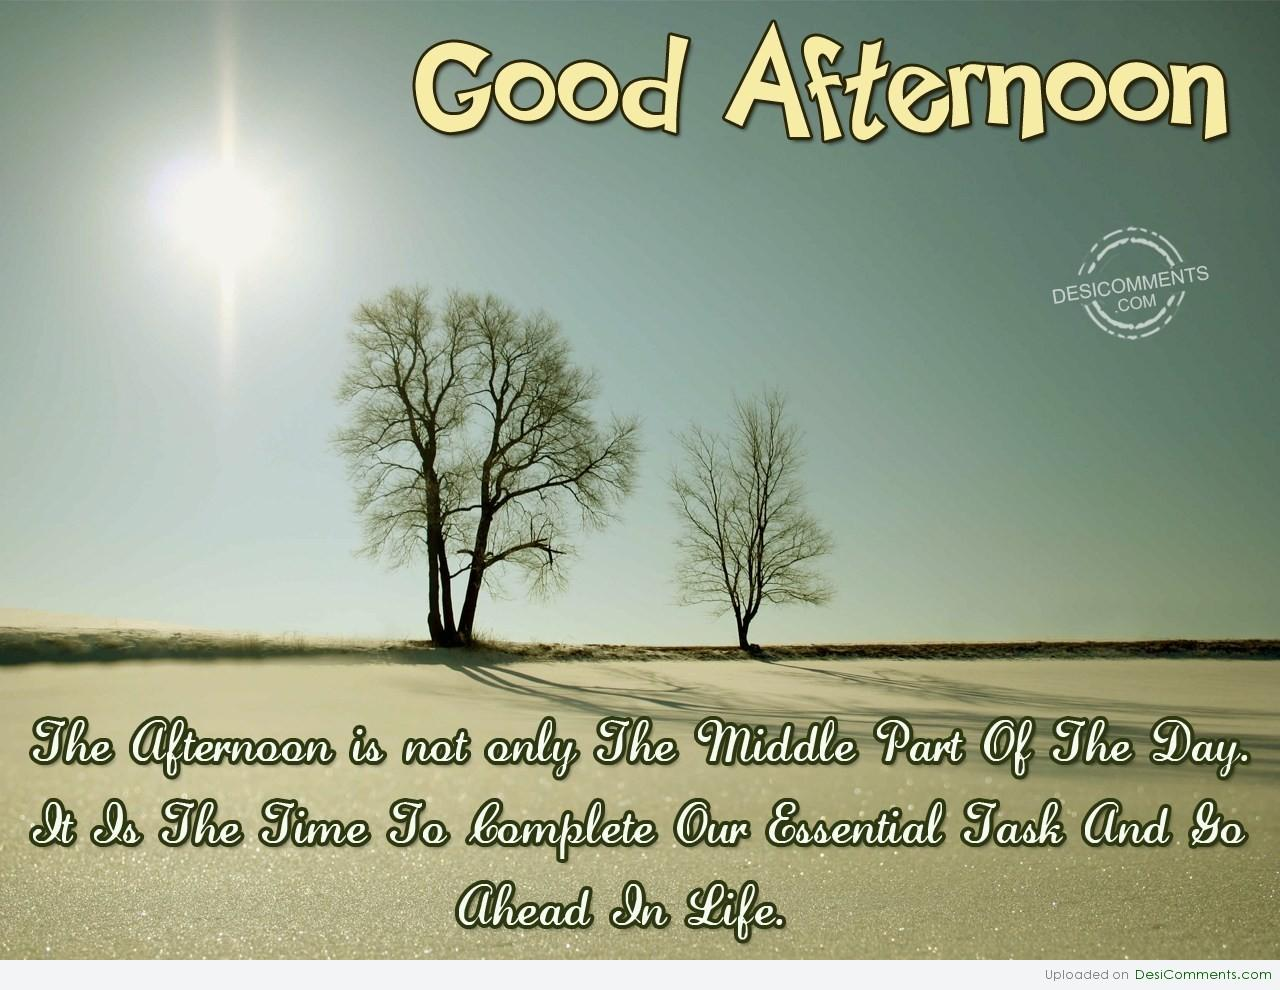 Wishing You A Very Good Afternoon - DesiComments.com